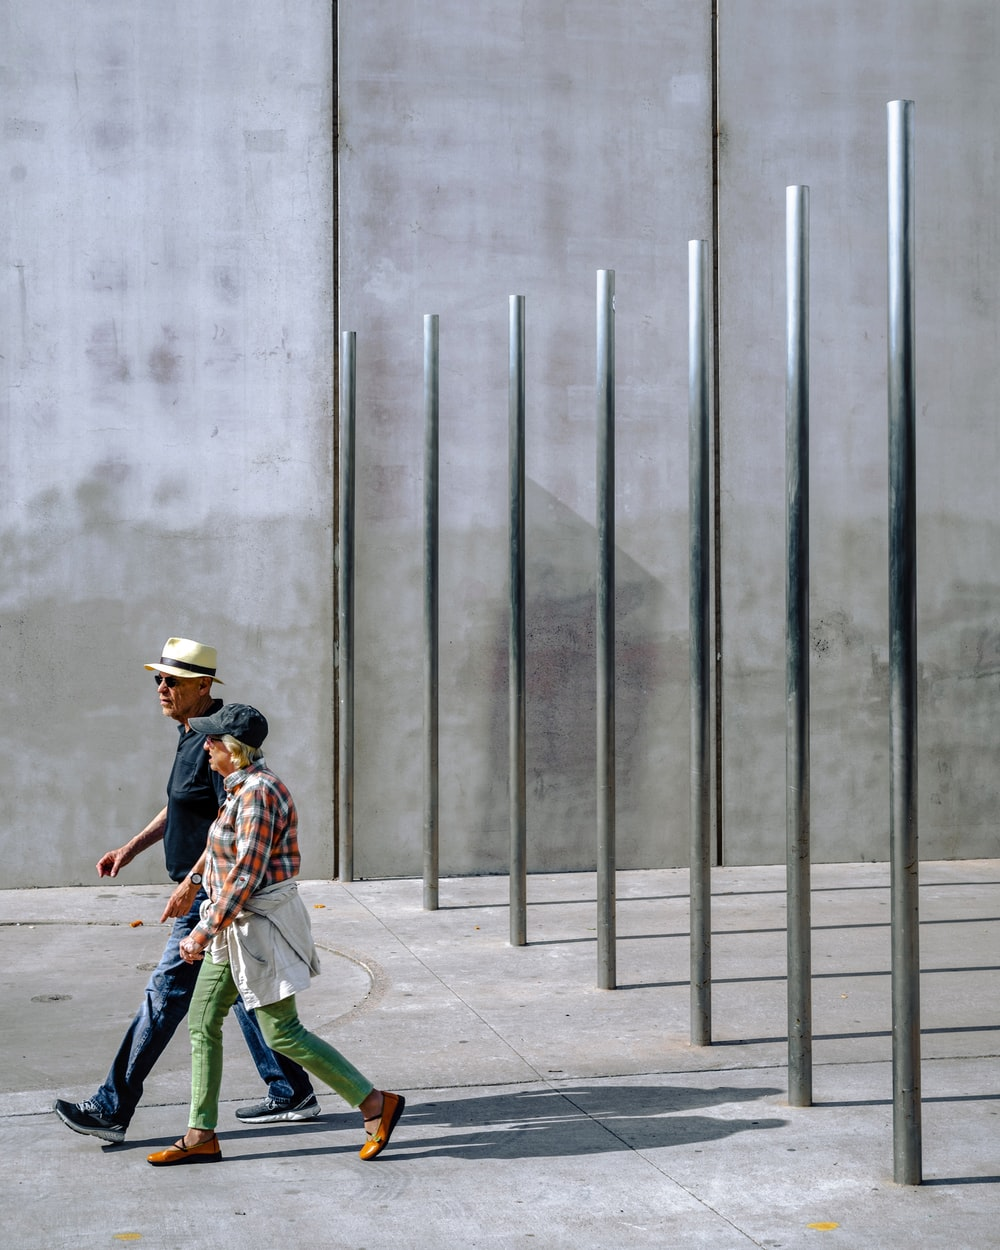 man and woman walking near stainless steel posts